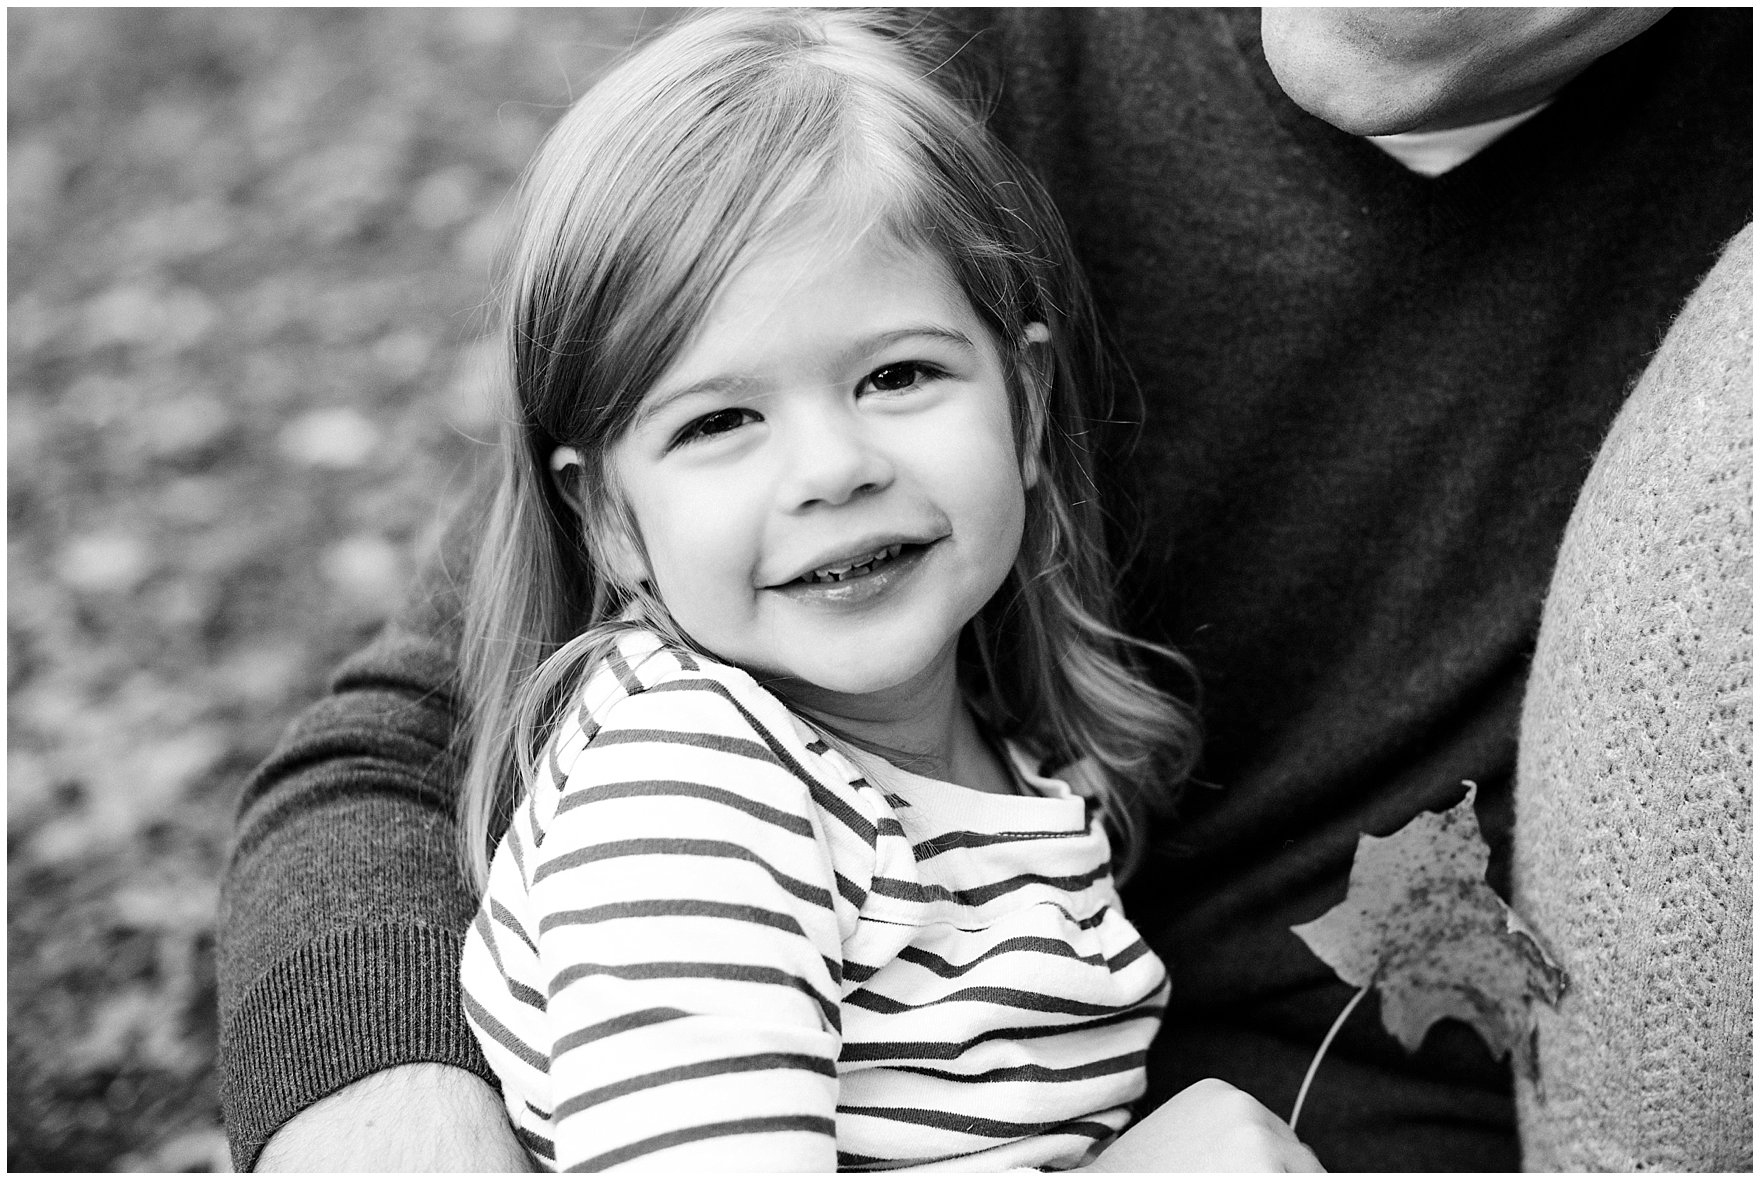 A little girl holds a leaf and snuggles with her dad during a Morton Arboretum fall family session.